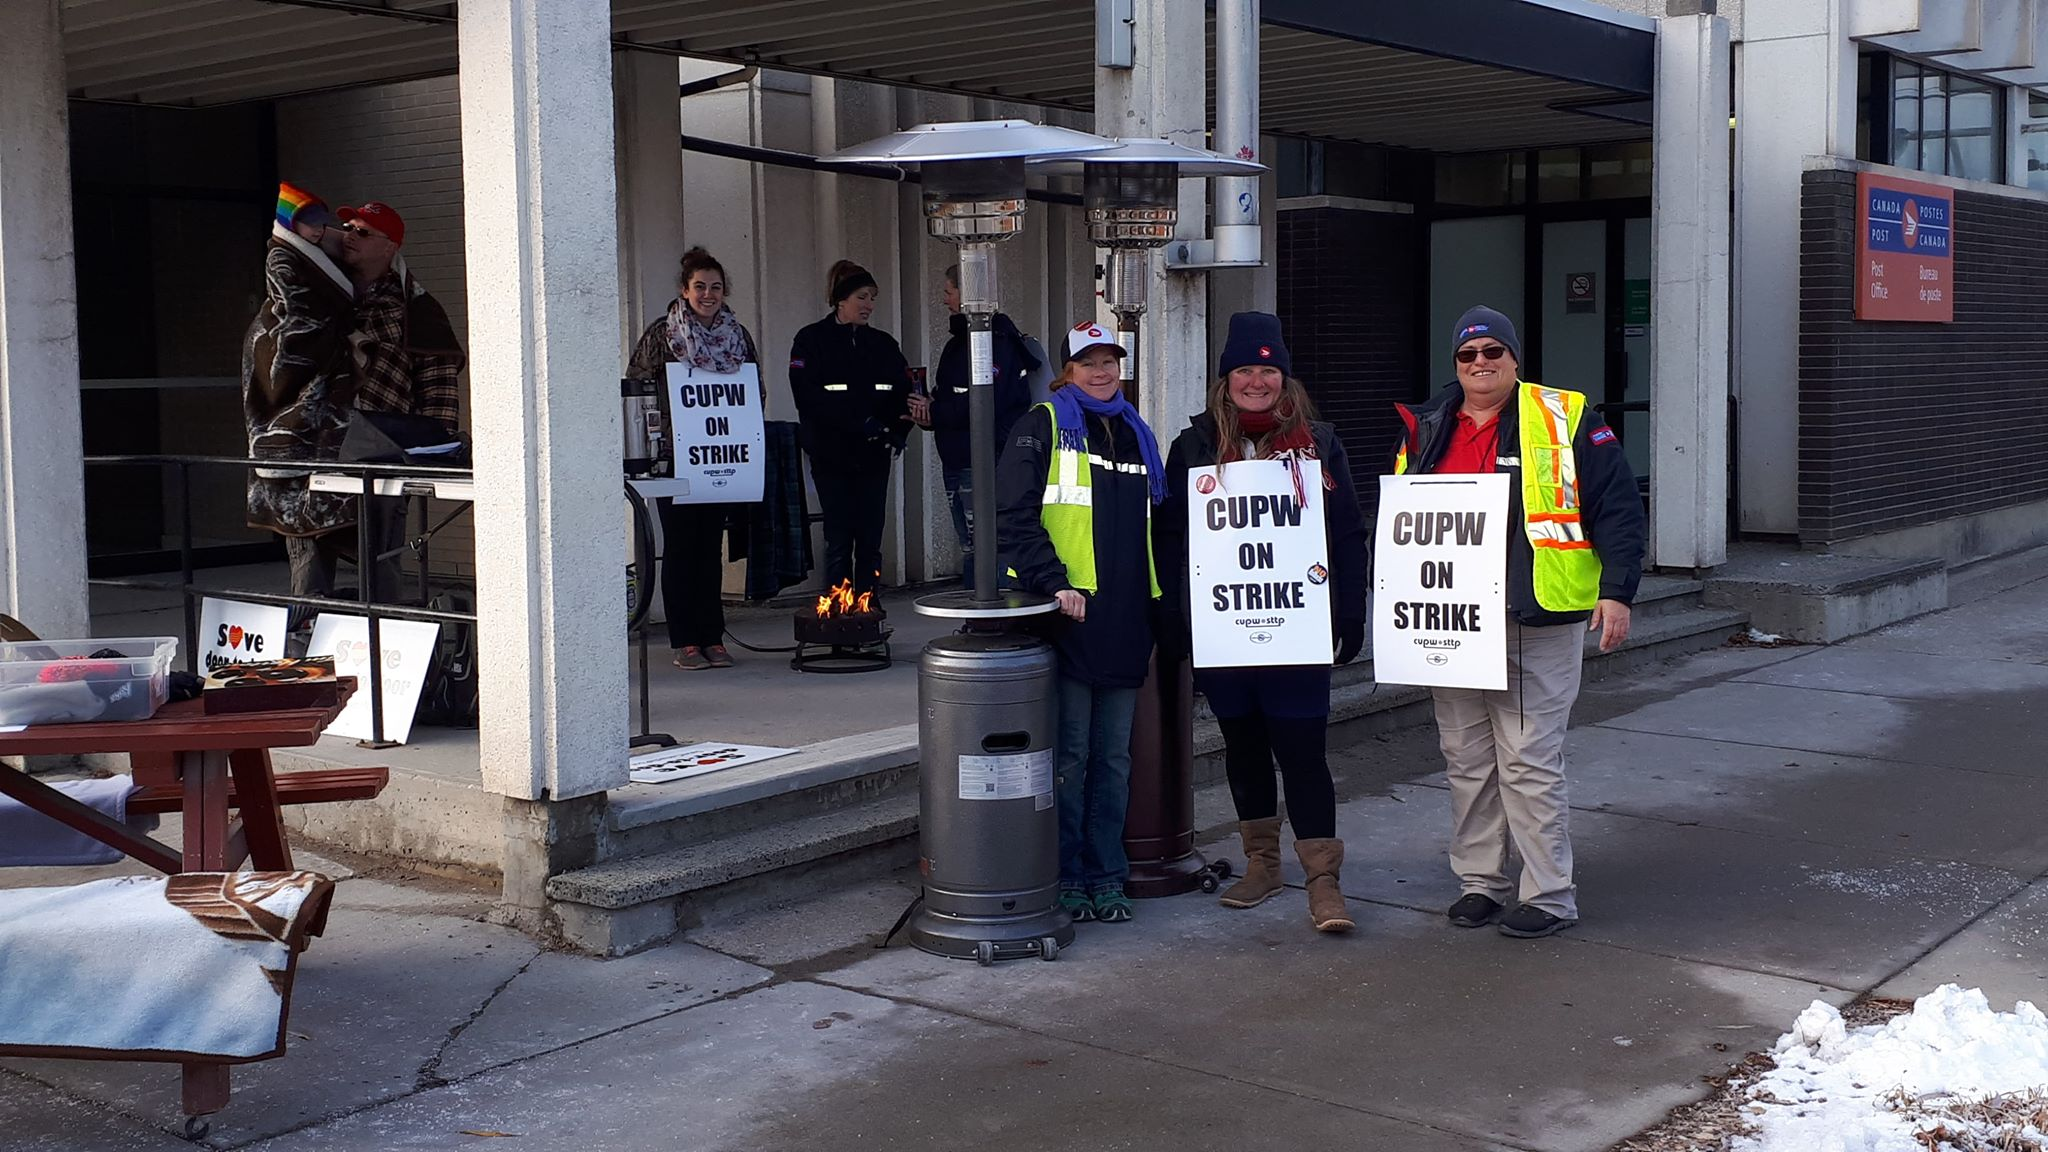 Mail delays expected in Kootenays following postal strike in Cranbrook